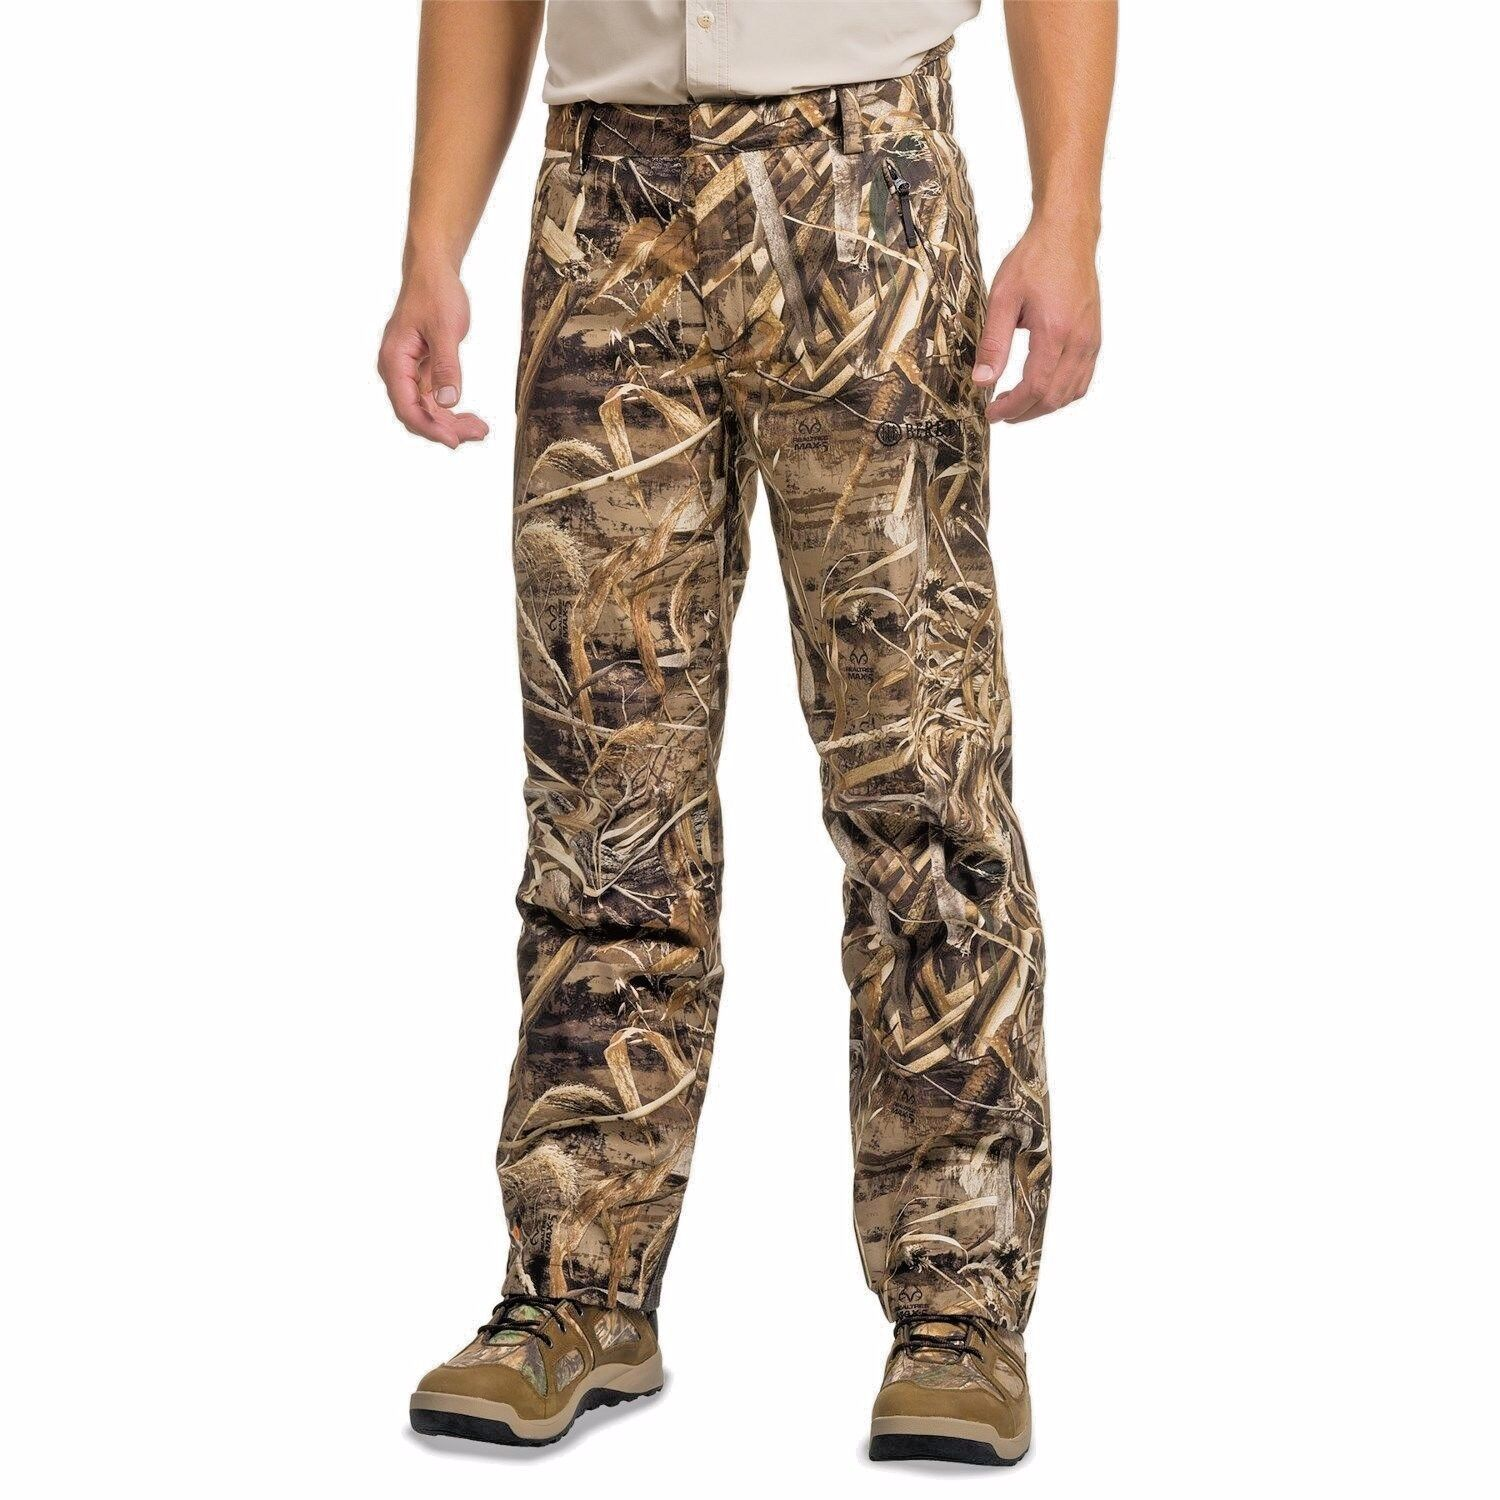 BERETTA Waterhönser Max5 Hunting Pants - 2 Layer Camo Tree Vattensäker BNWT